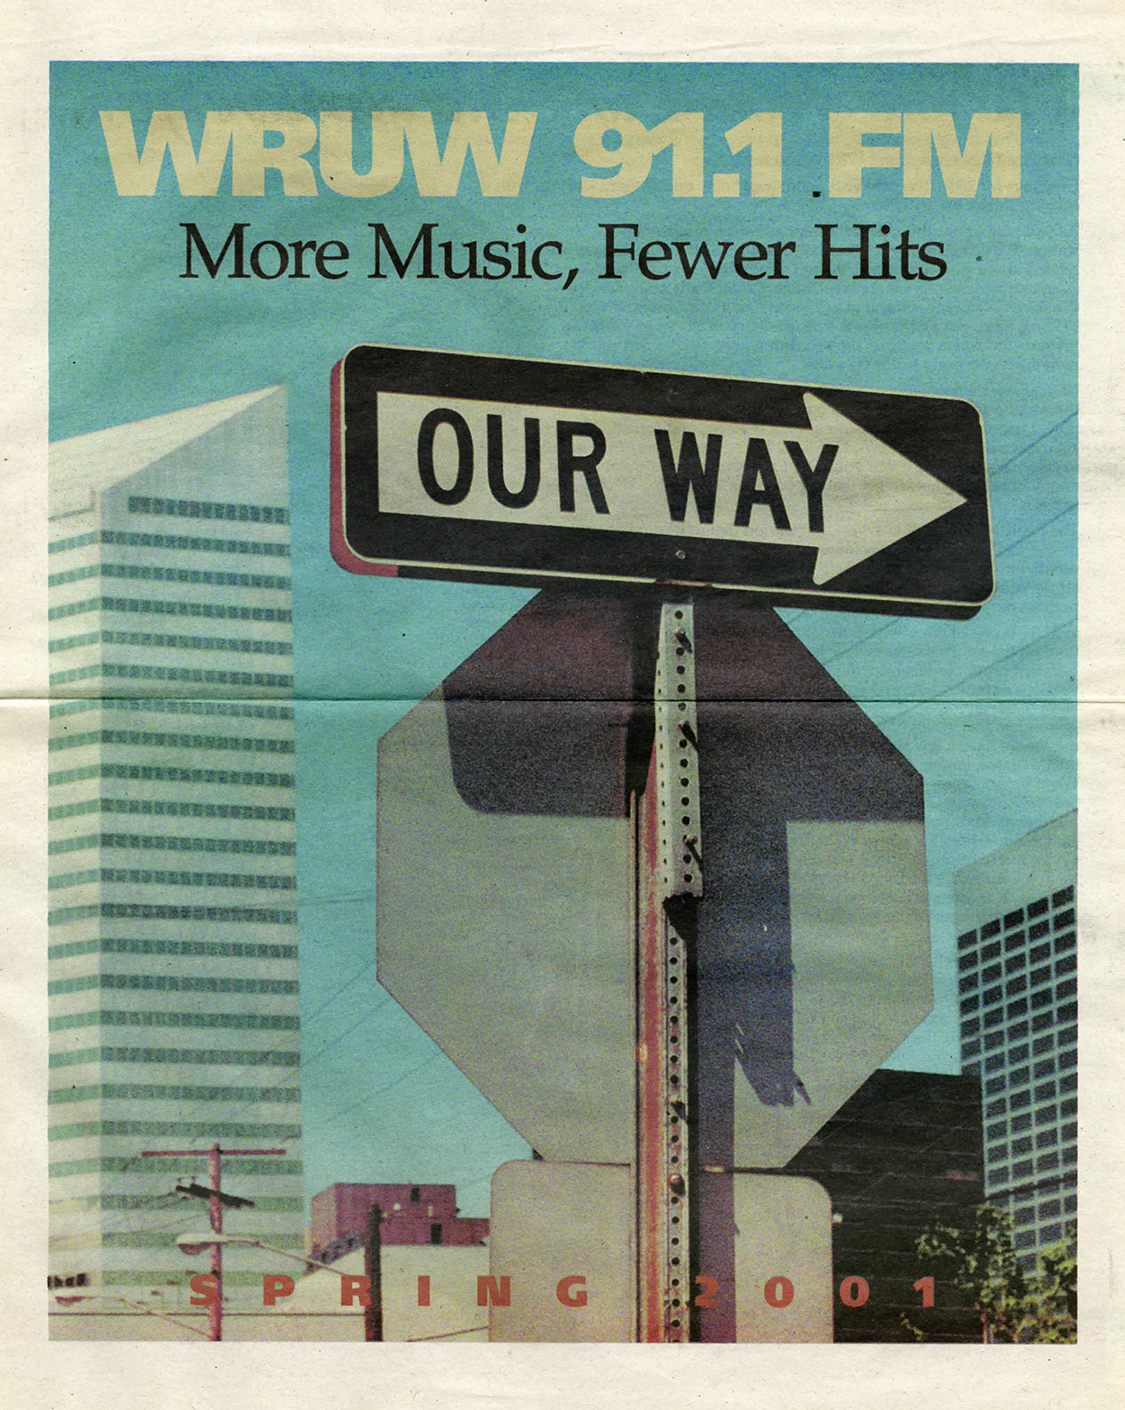 Newsprint cover of WRUW programming guide depicting a wrong way road sign altered to display our way.